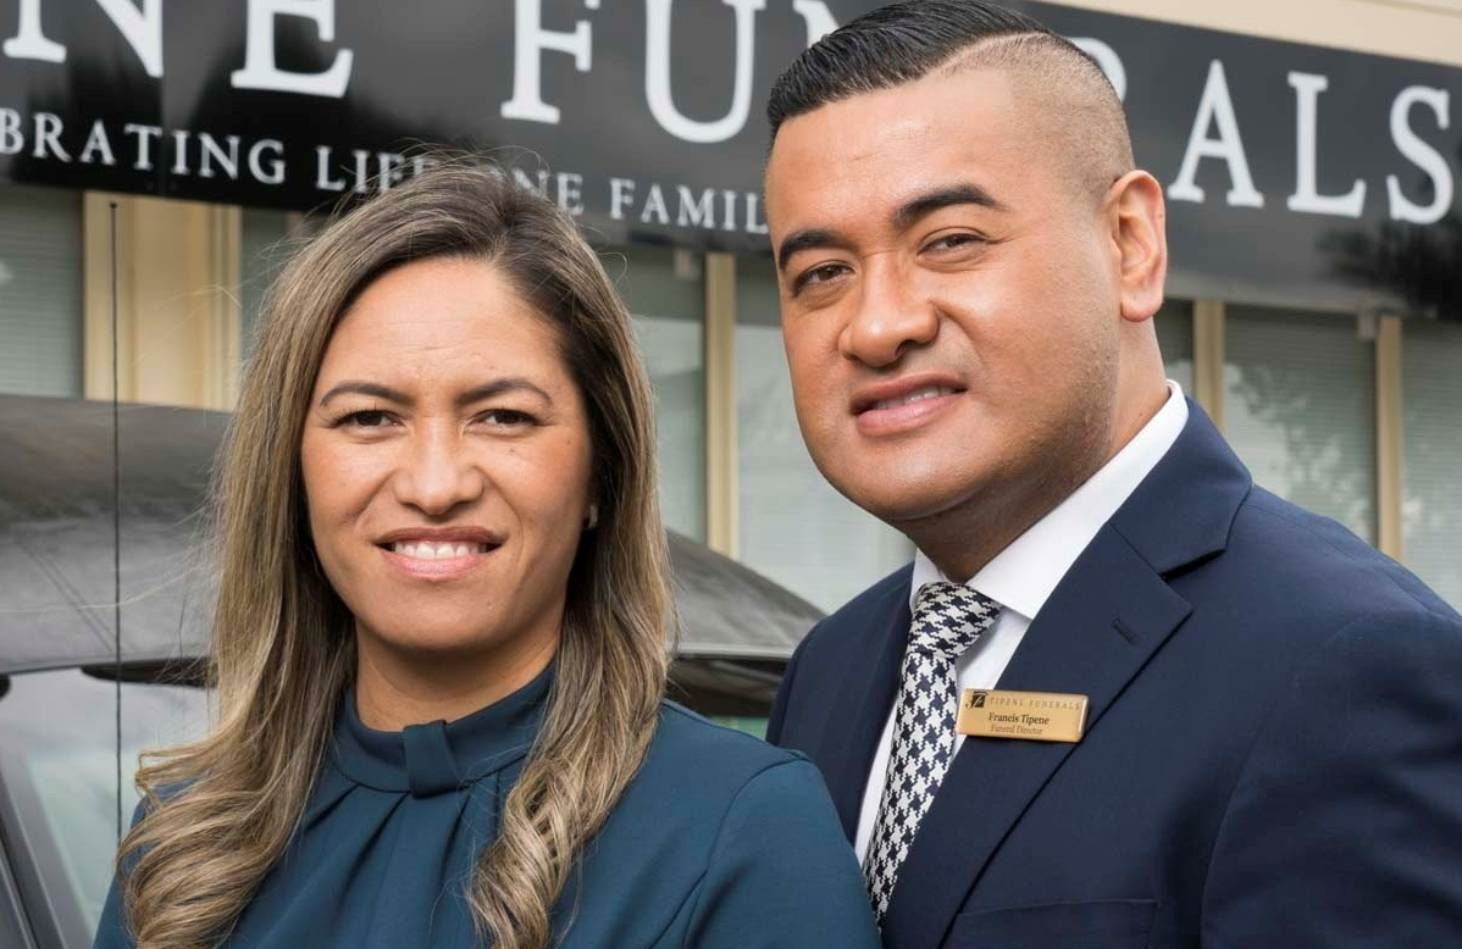 Funeral home owners Kaiora and Francis Tipene star in the Kiwi reality series, Casketeers. (Netflix)